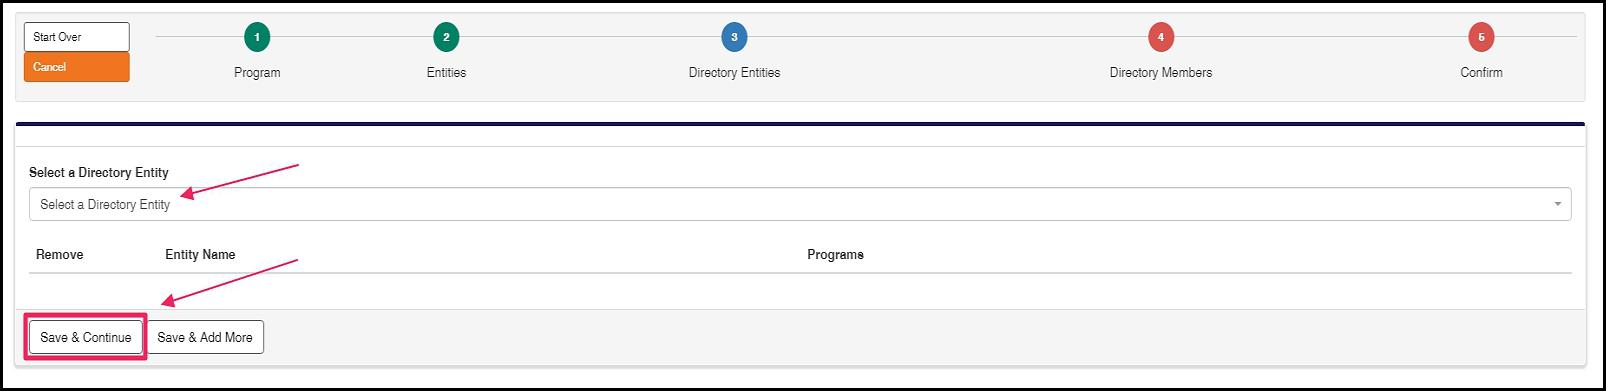 """Click in the Directory Entity box to select your site. Then select """"Save & Continue""""."""